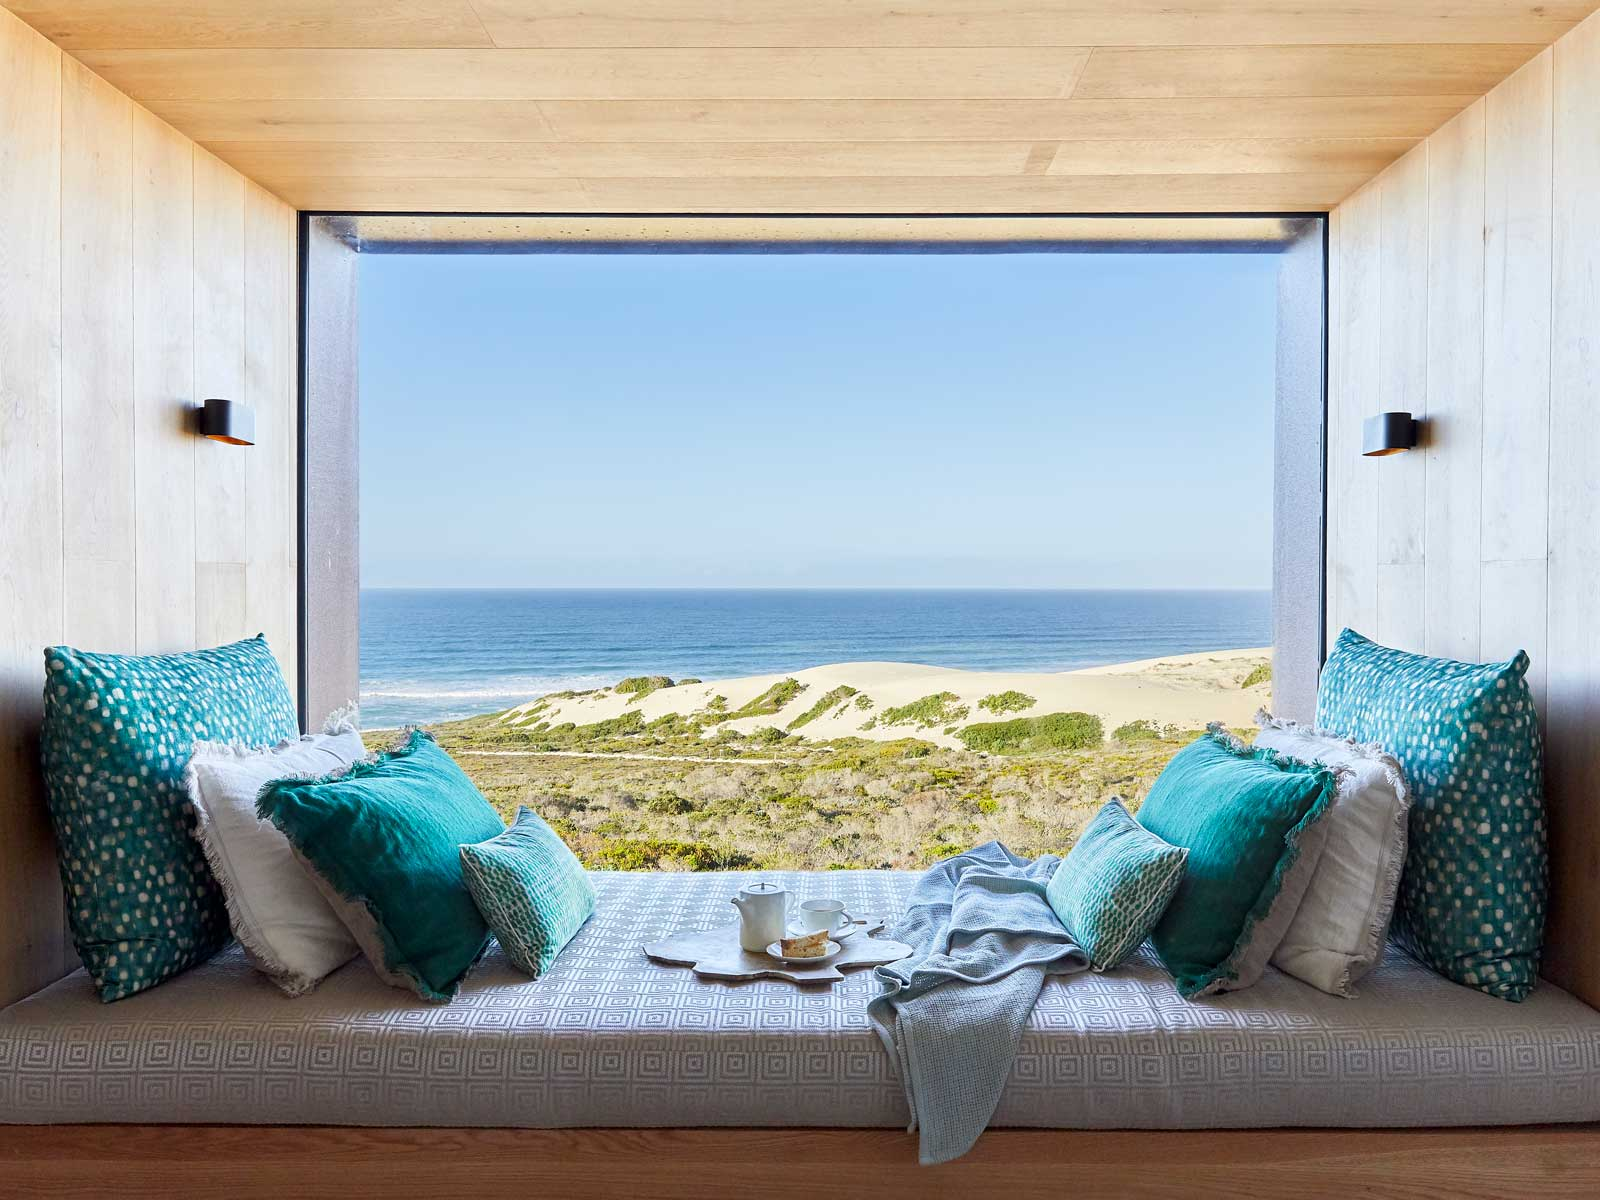 Morukuru Beach Lodge, DeHoop Nature Reserve, South Africa